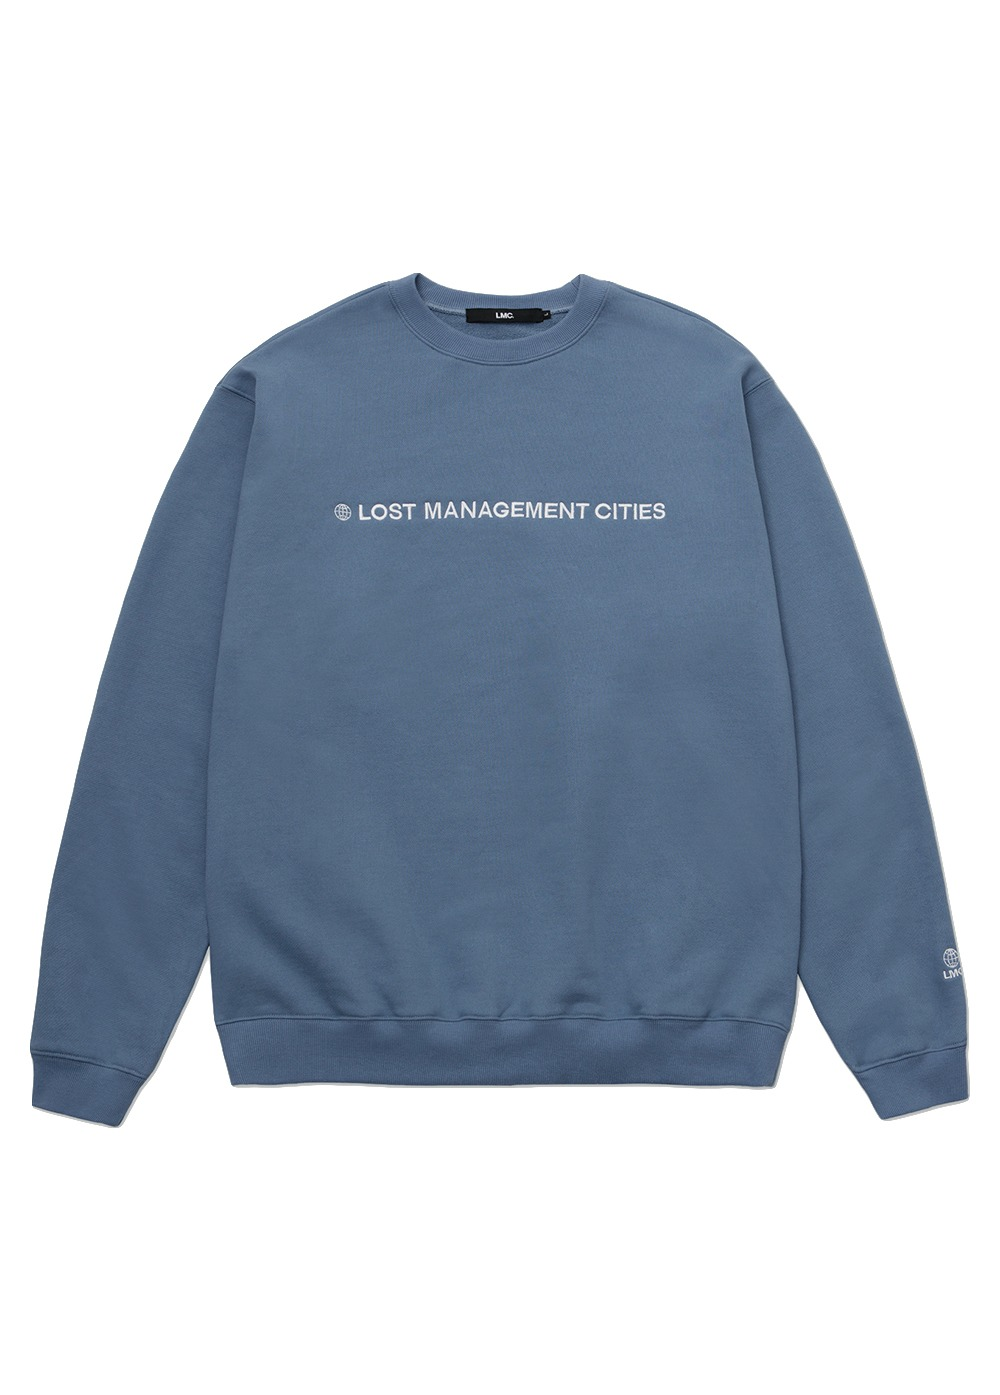 LMC CAPITAL LOGO SWEATSHIRT blue